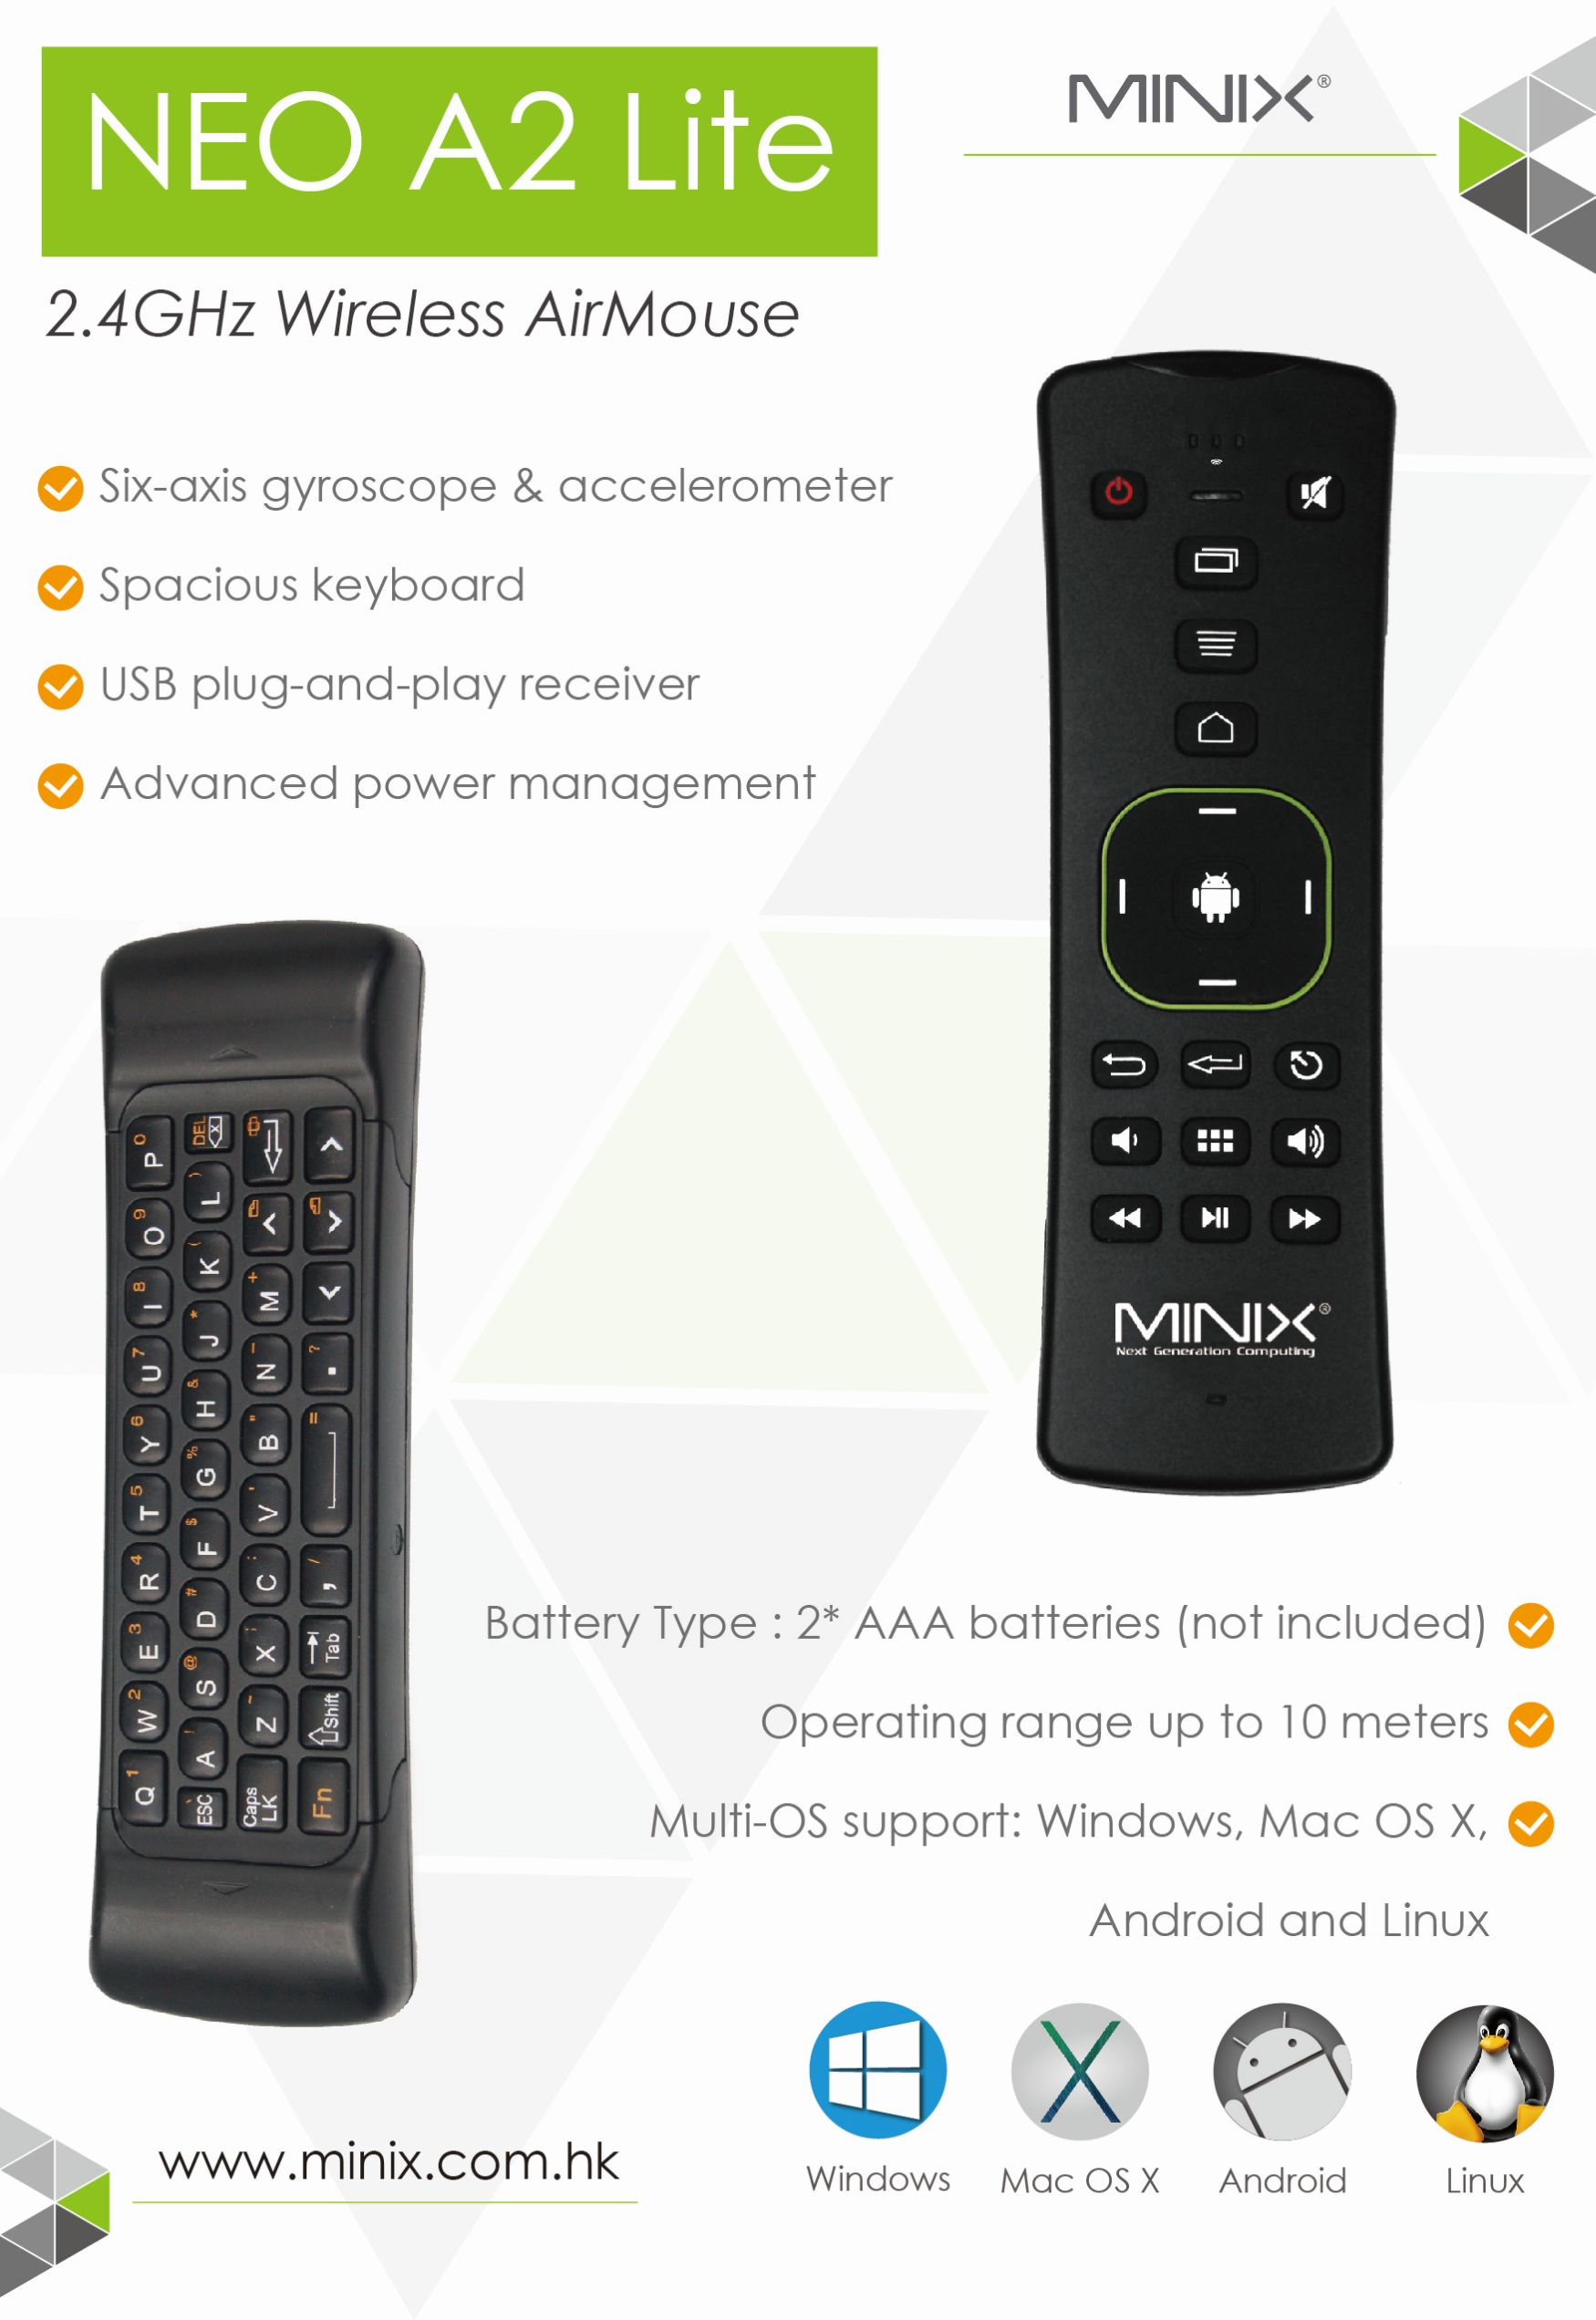 Minya.gr - Minix Neo A2 Lite 2.4GHz Wireless Air Mouse